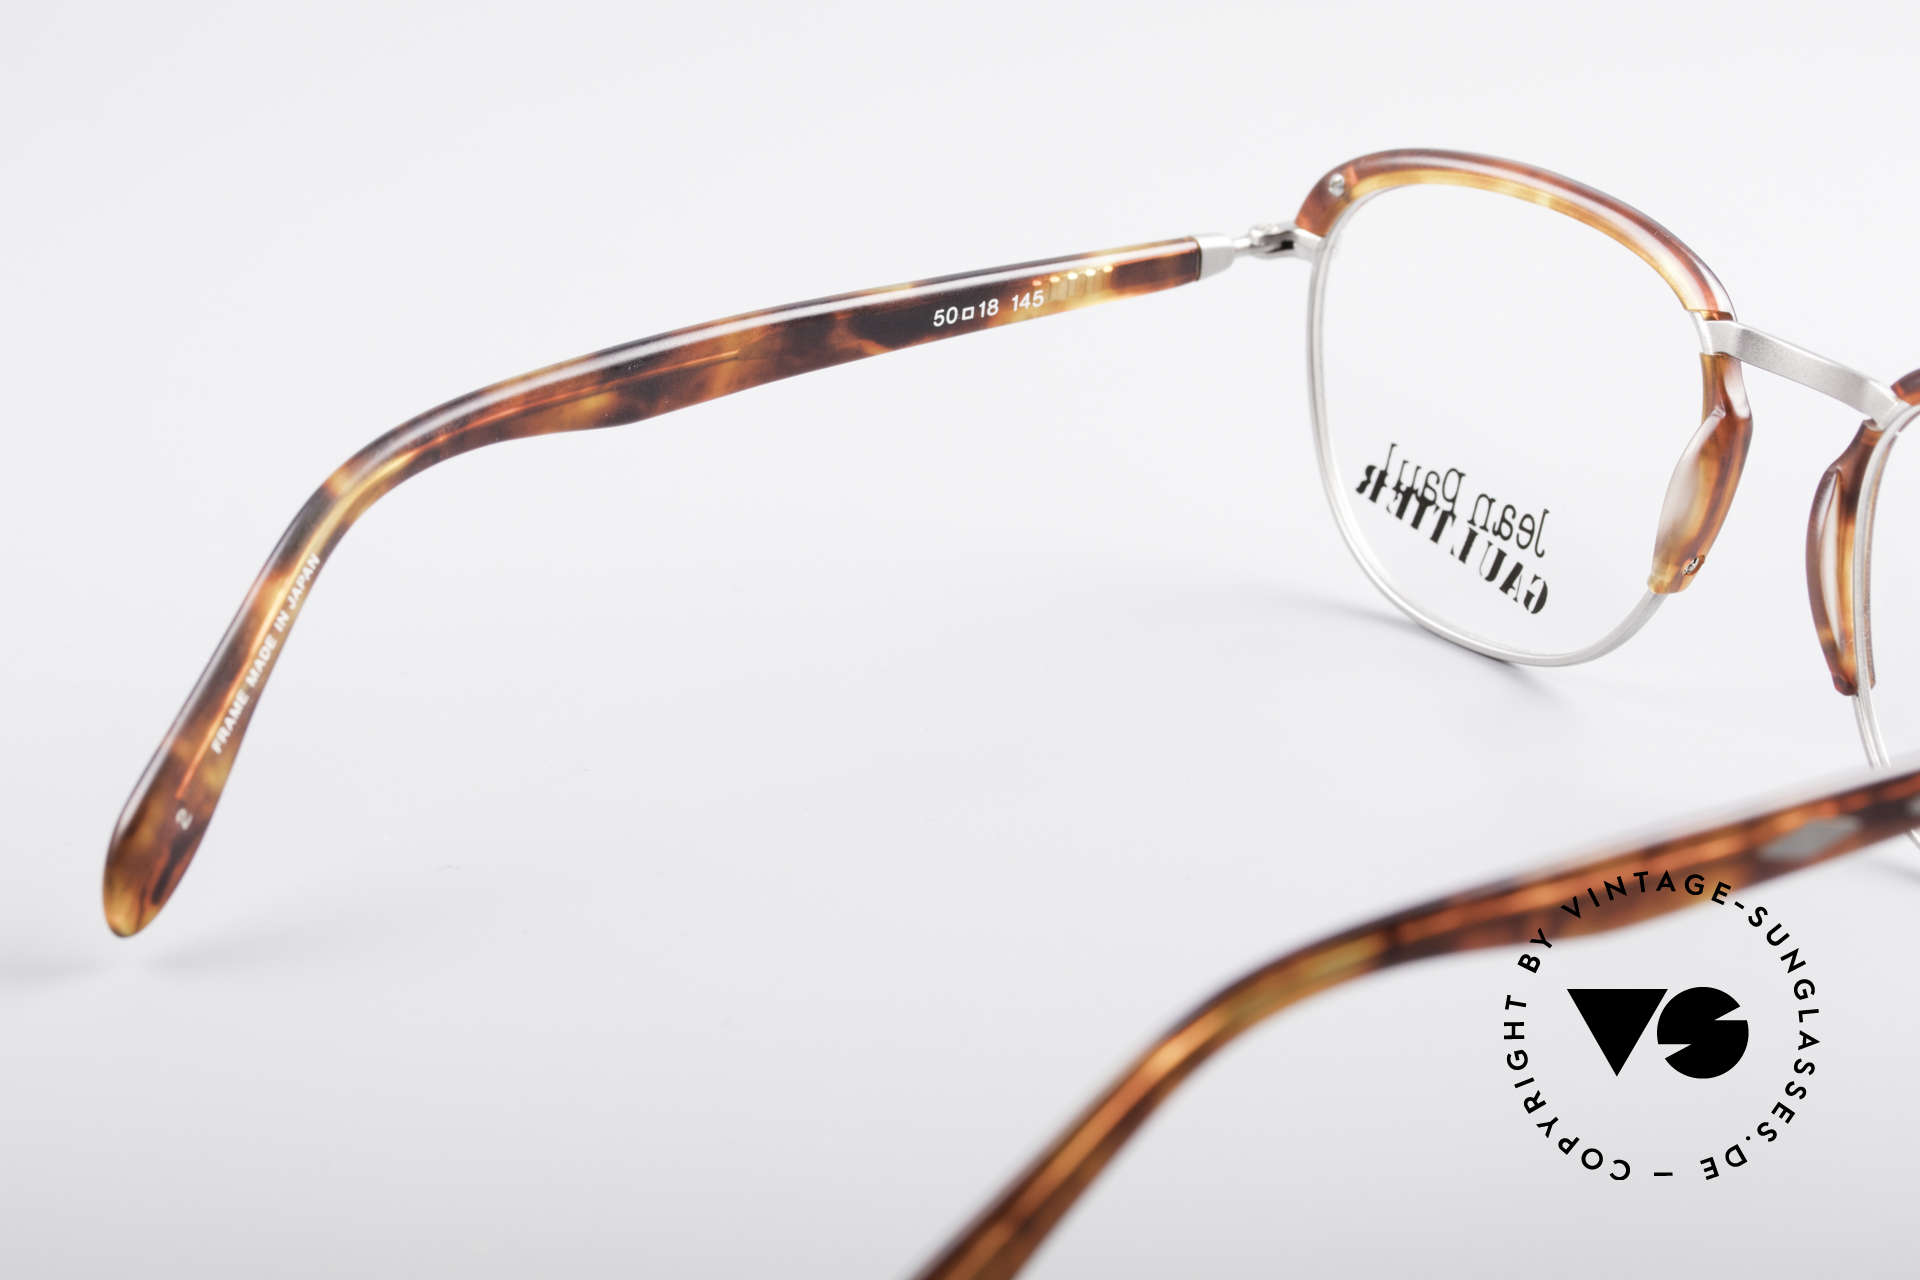 Jean Paul Gaultier 55-1273 Vintage 90's Specs, Size: small, Made for Men and Women